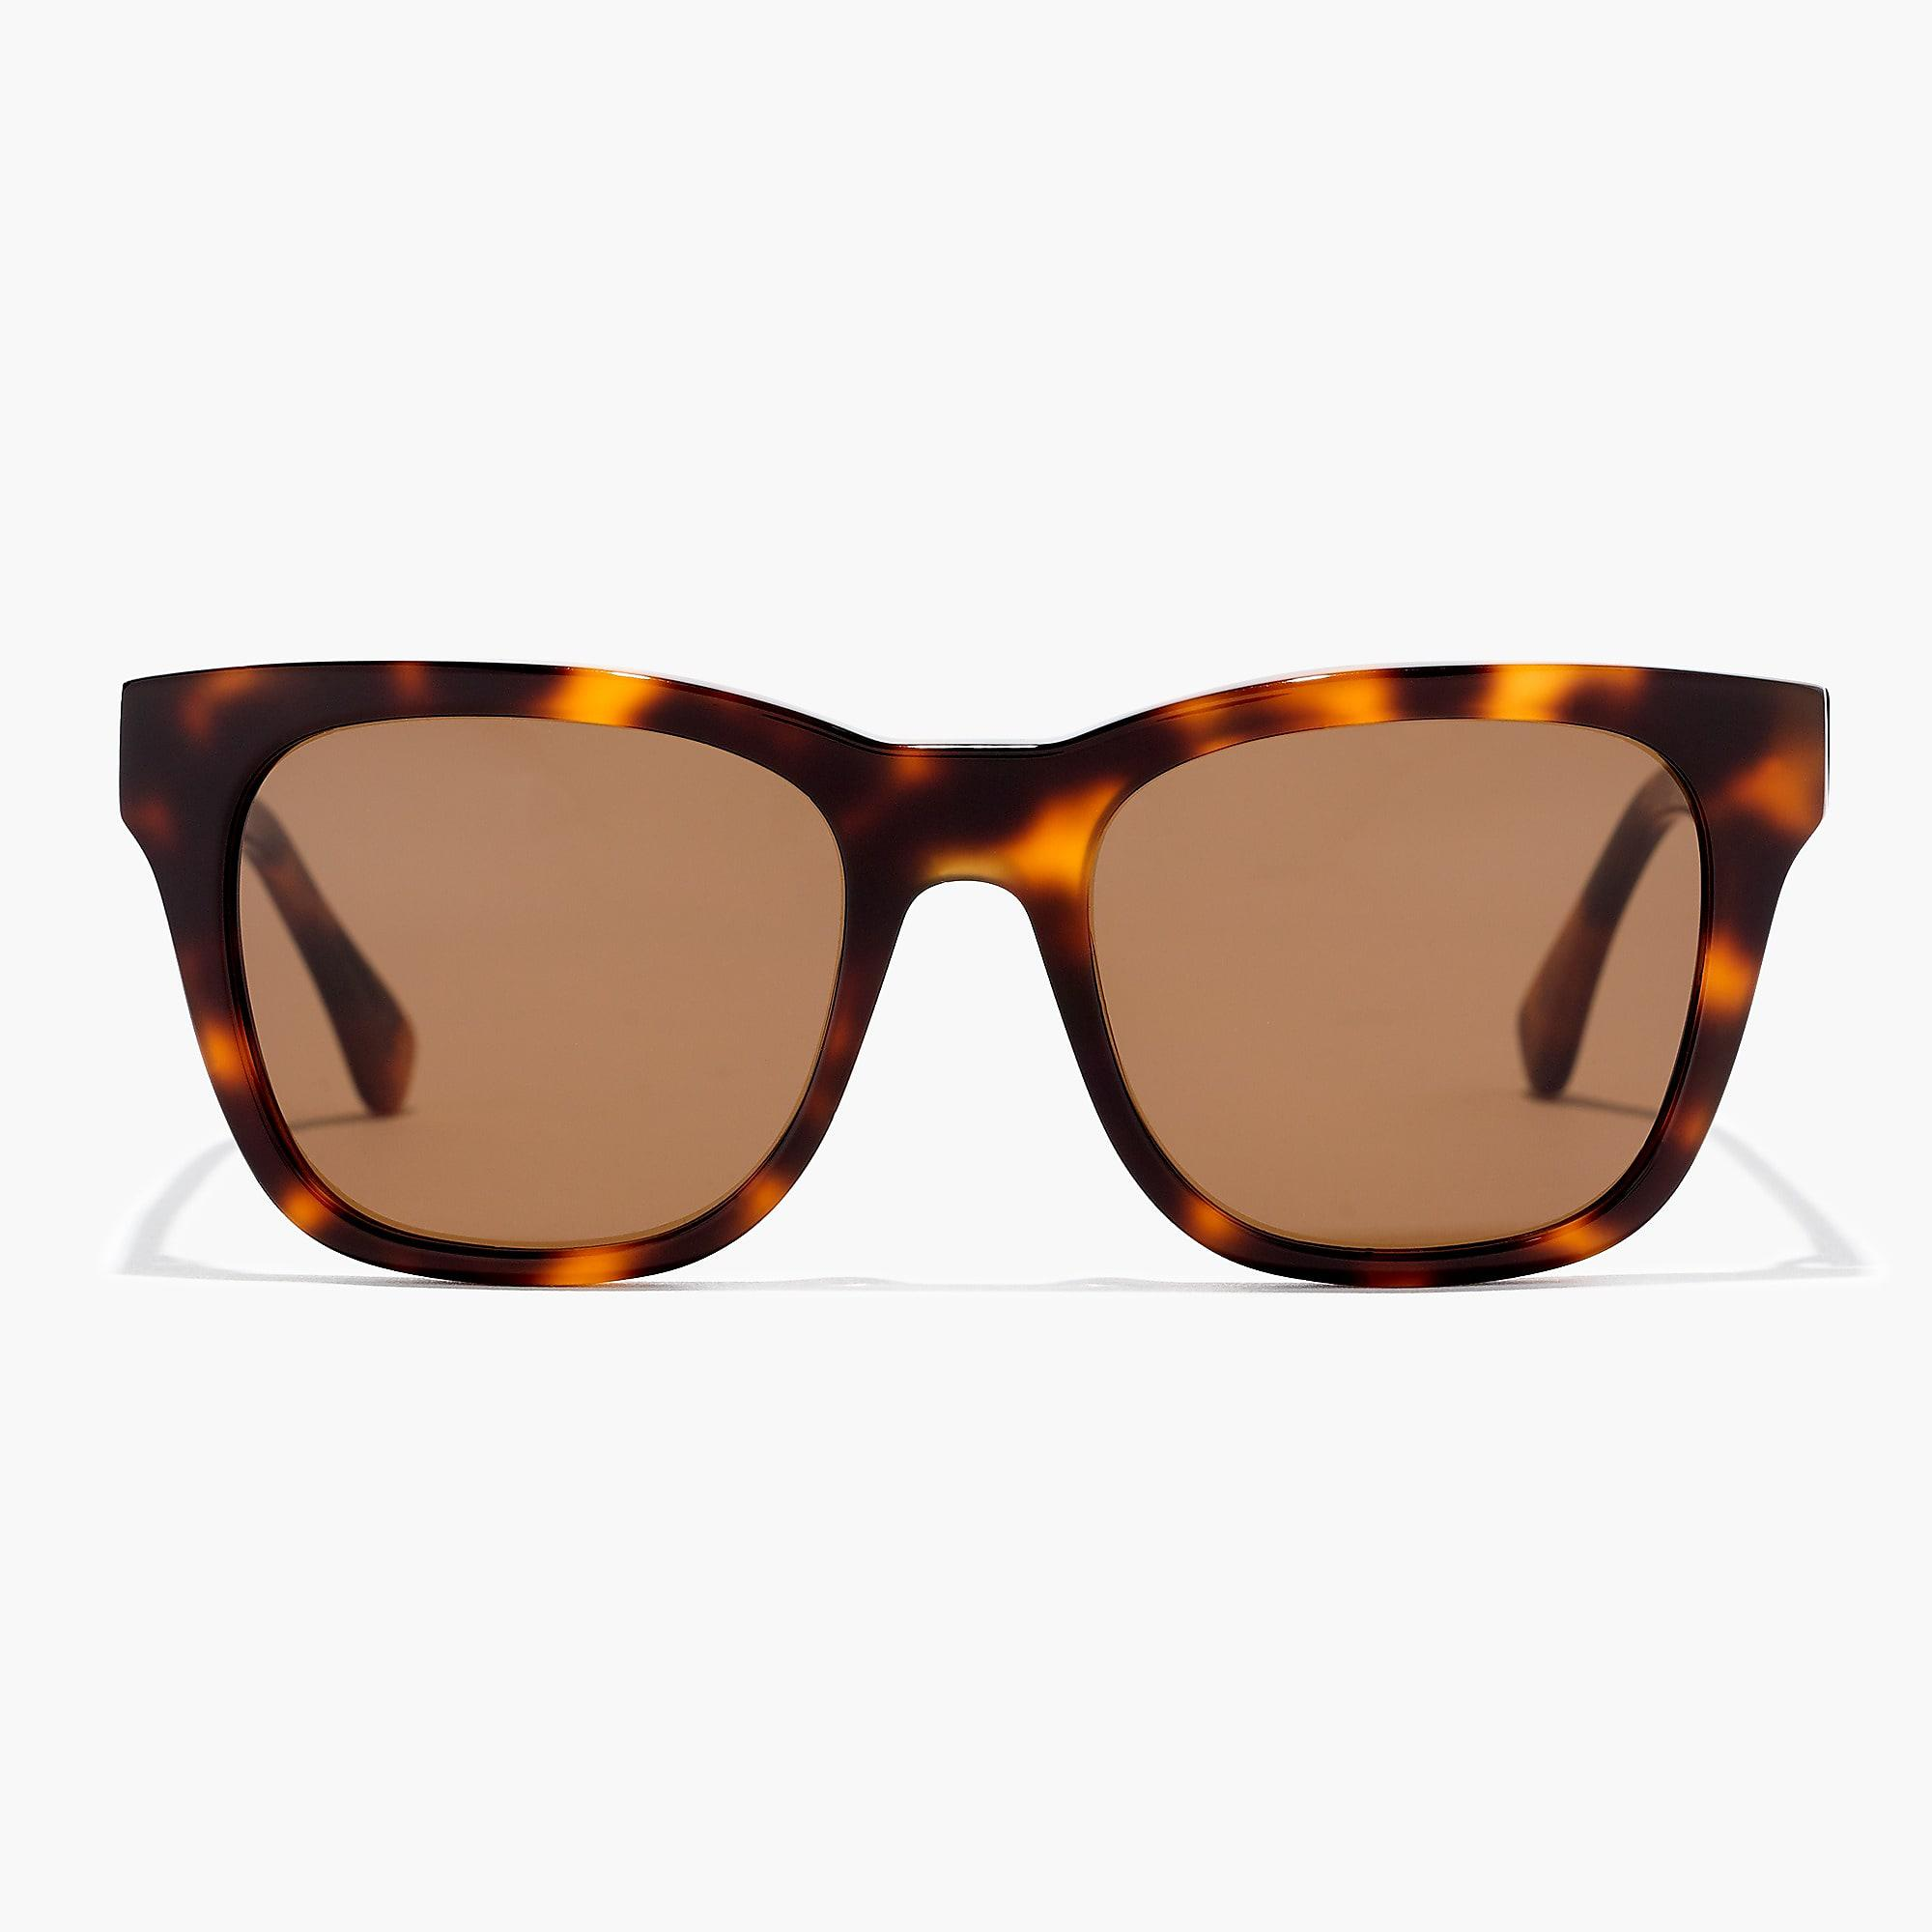 aa8a8f8fbb J.Crew Roadster Sunglasses in Brown for Men - Lyst